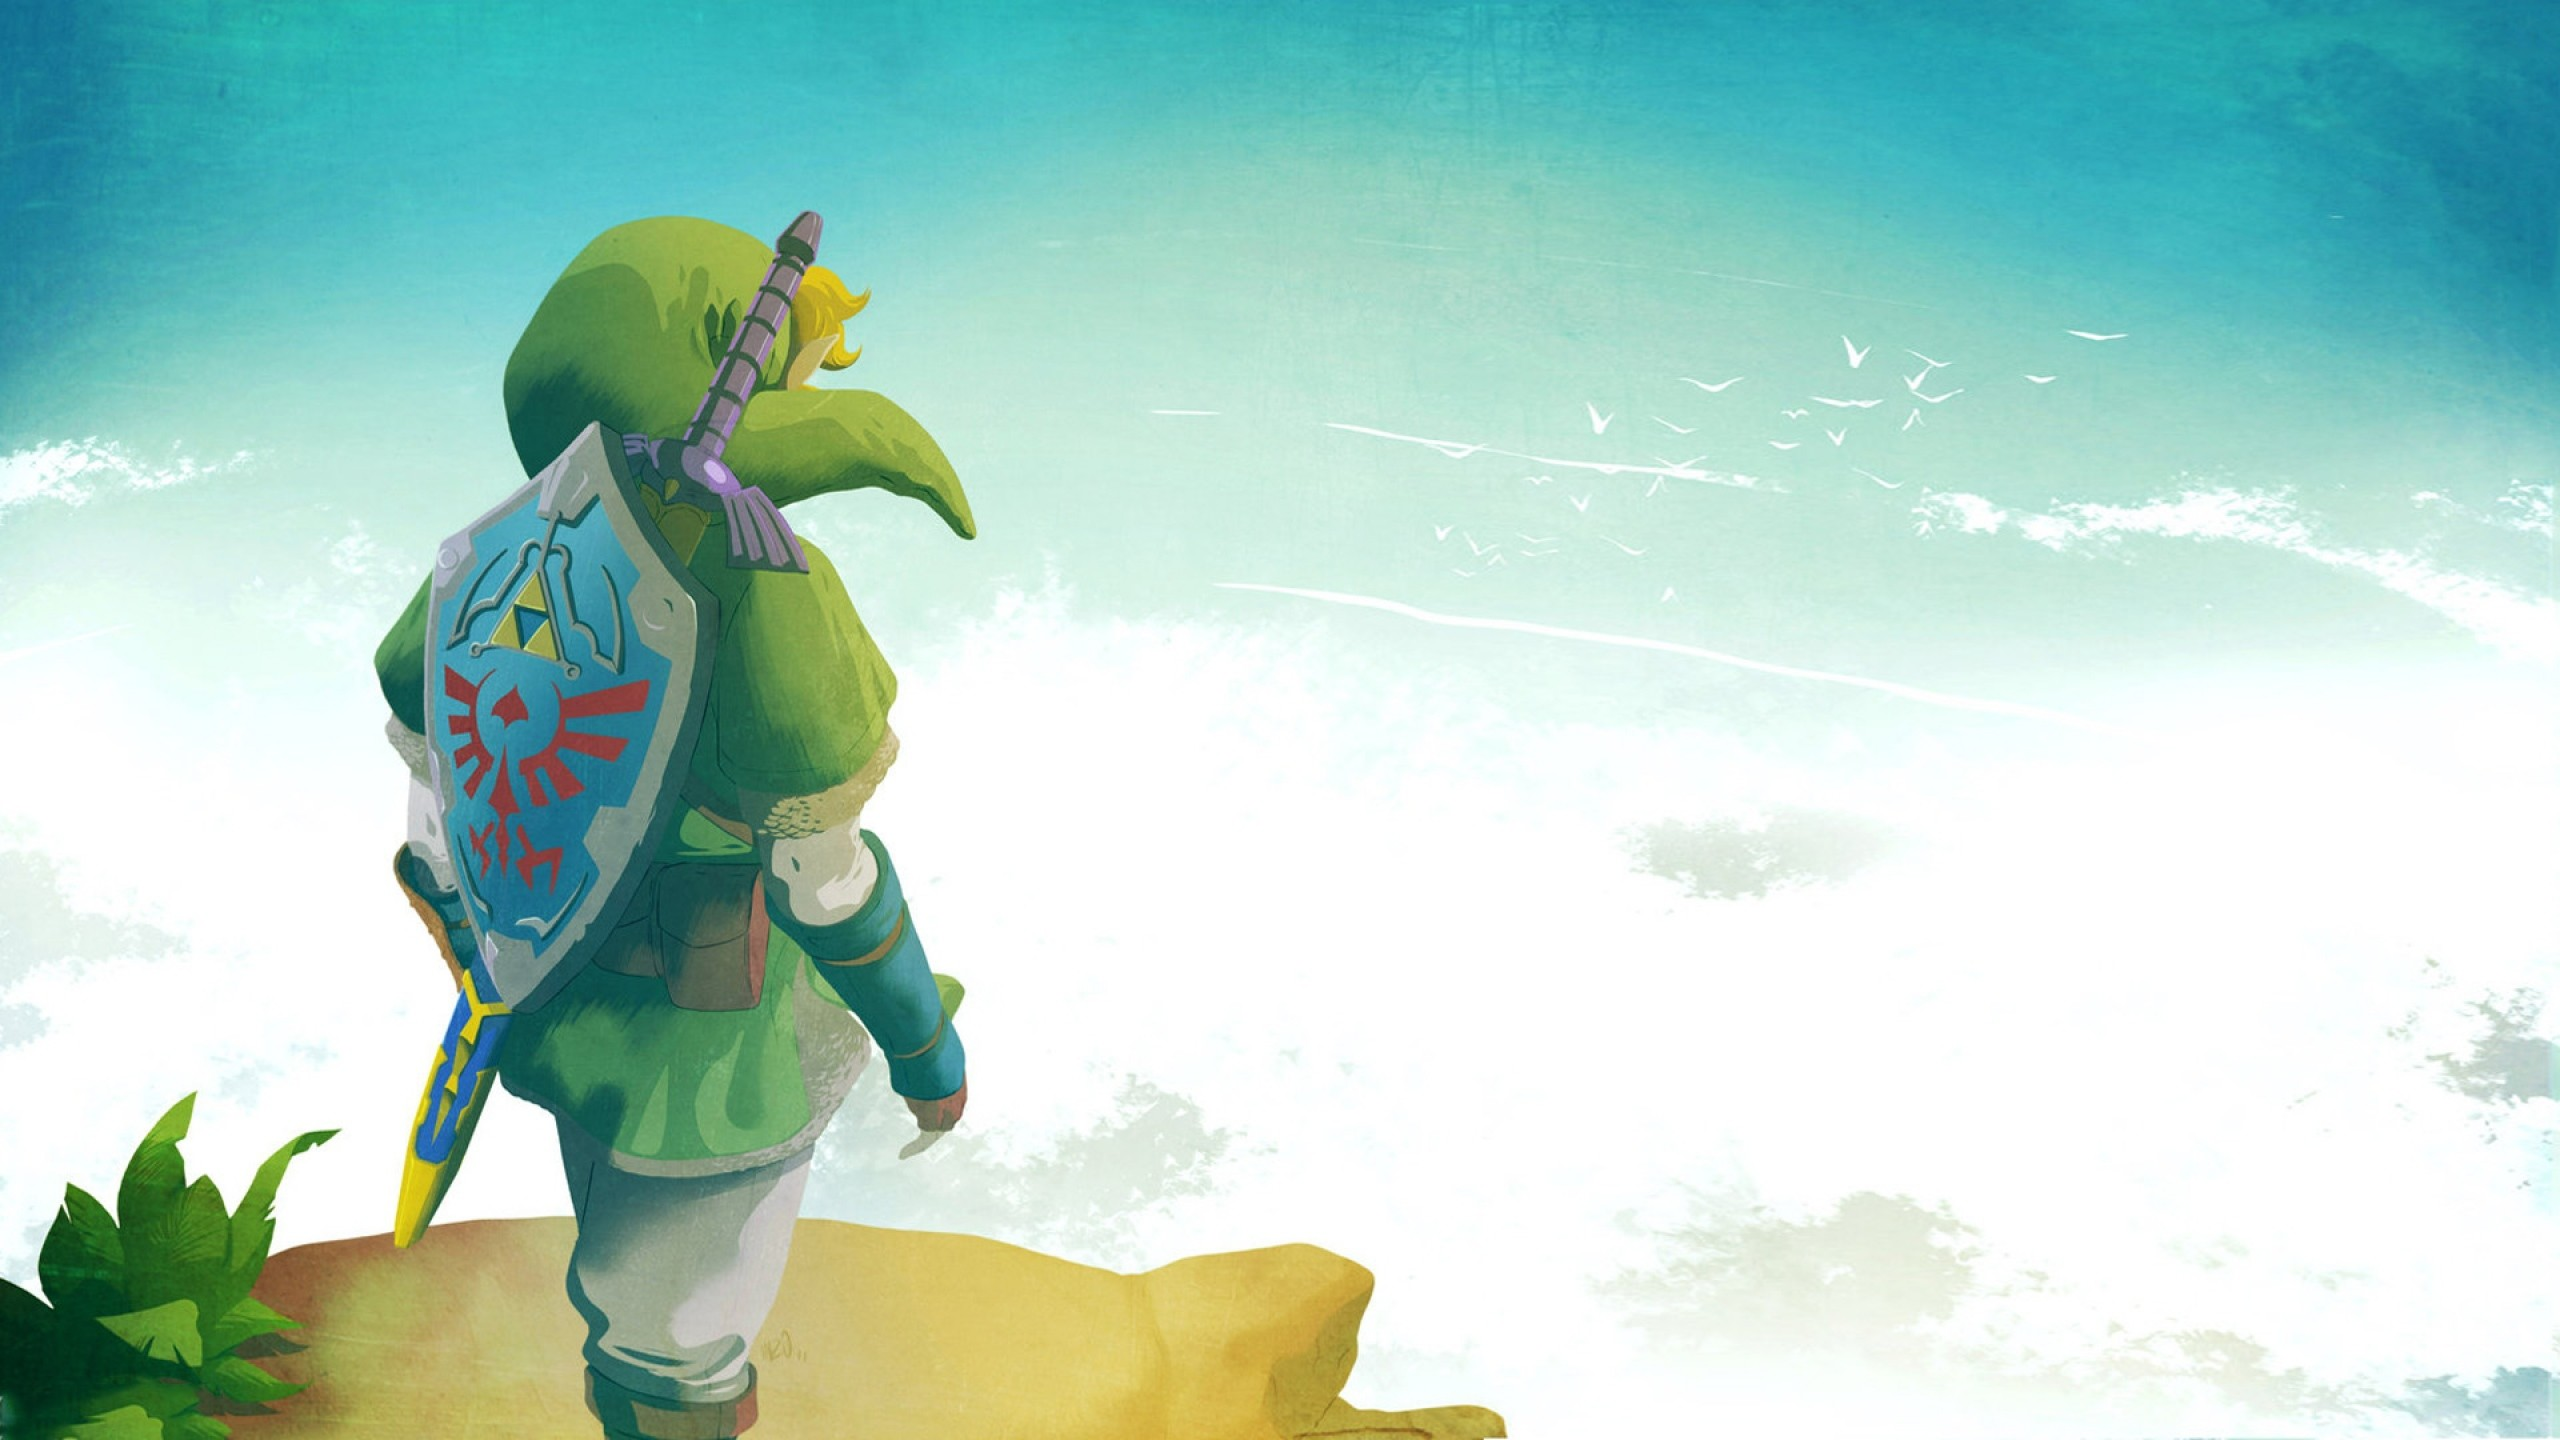 2560x1440 The-legend-of-zelda-elf-shield-sky-background-